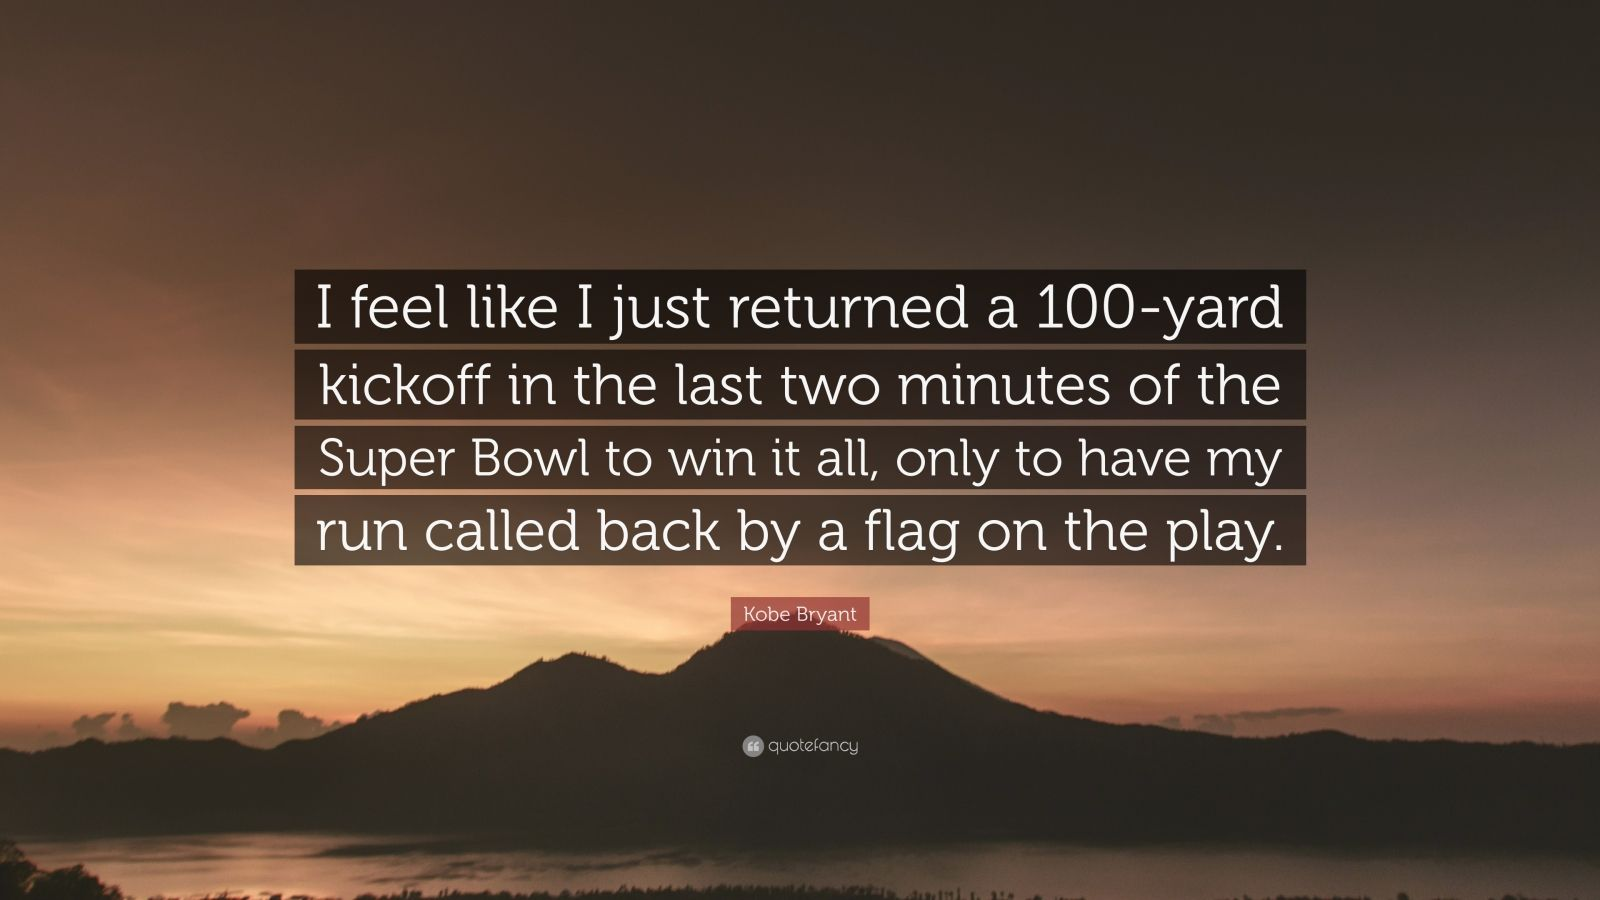 """Kobe Bryant Quote: """"I feel like I just returned a 100-yard kickoff in the last two minutes of the Super Bowl to win it all, only to have my run called back by a flag on the play."""""""